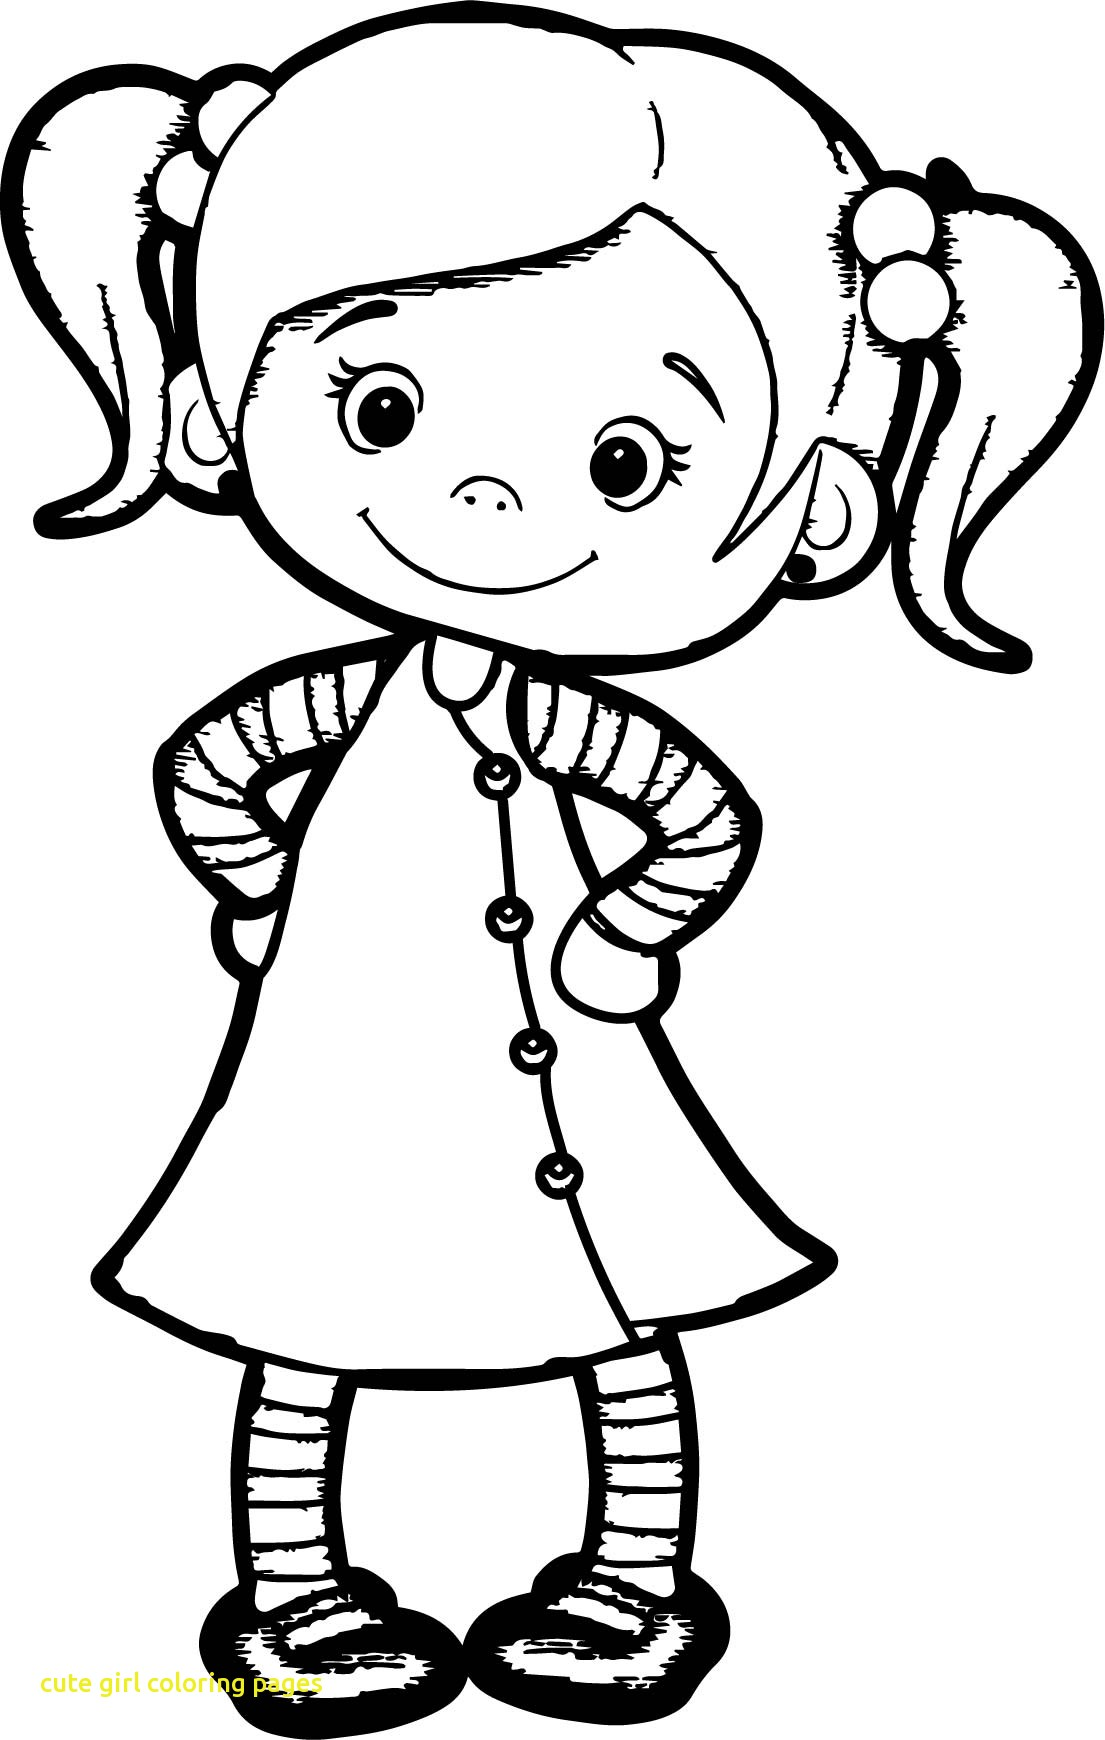 1105x1740 Cute Girl Coloring Pages With Beautiful Page